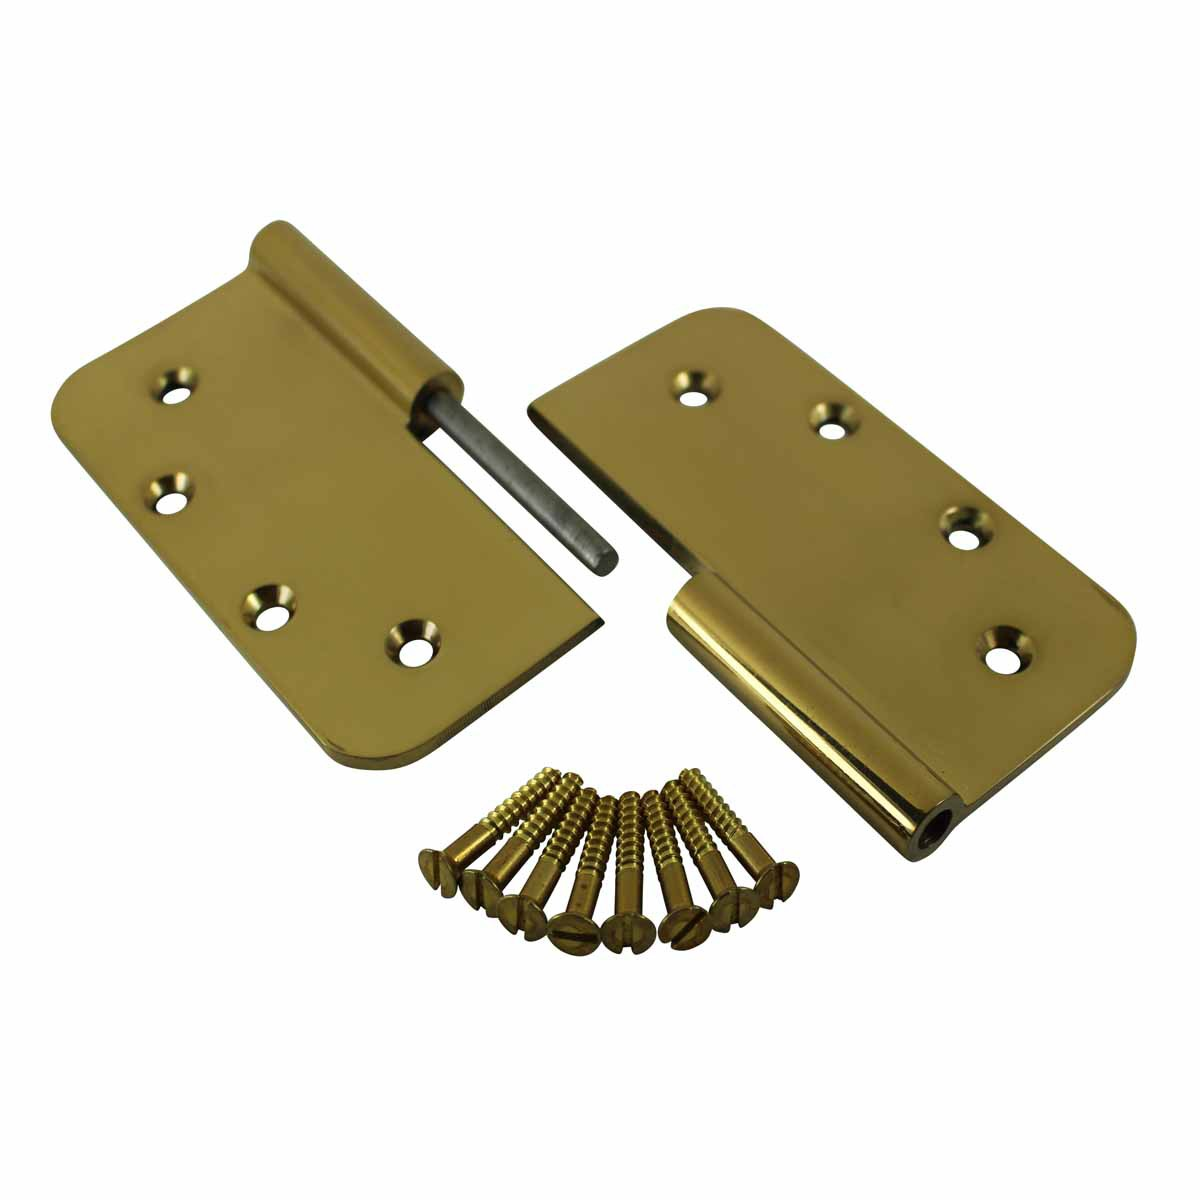 Lift Off Right Door Hinge Bright Solid Brass Radius 5 Door Hinges Door Hinge Solid Brass Hinge